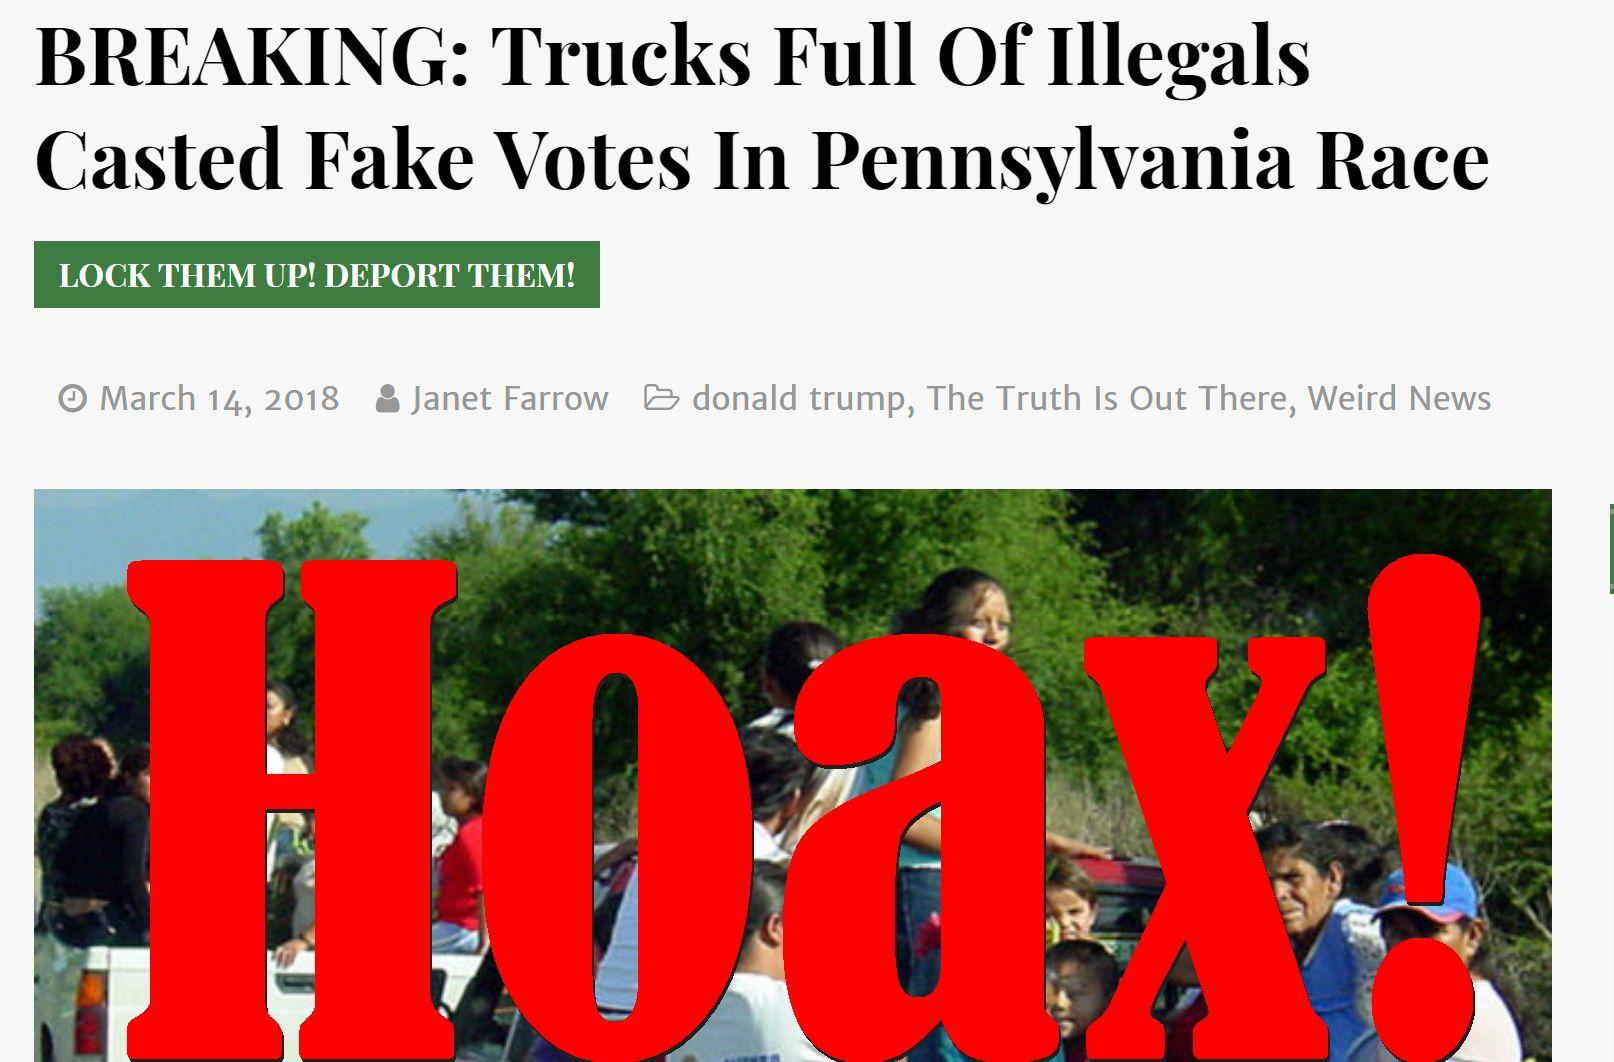 Fake News: Trucks Full Of Illegals Did NOT Cast Fake Votes In Pennsylvania Race